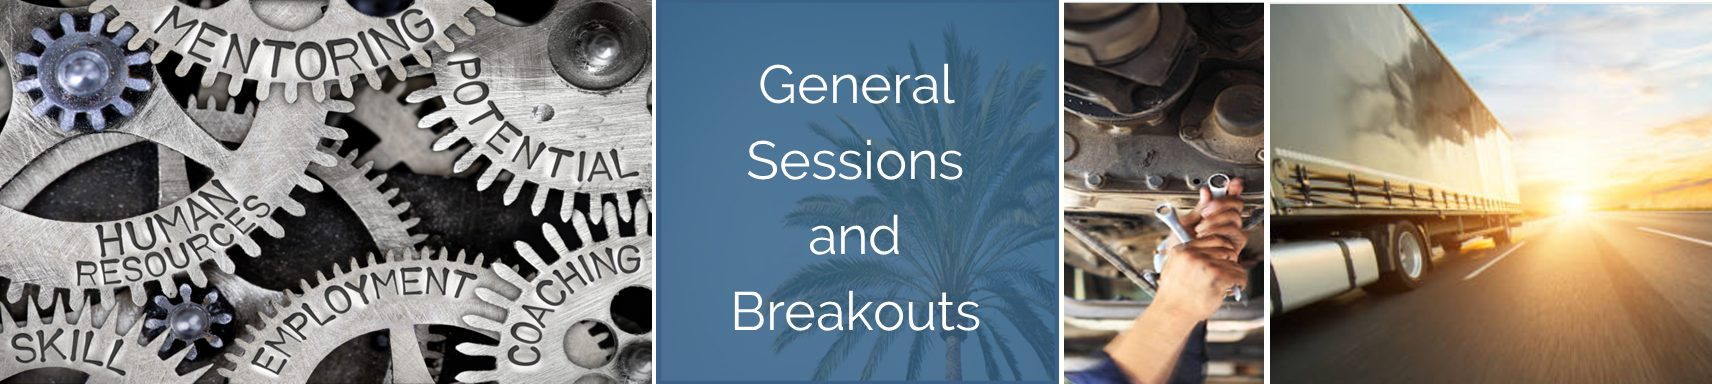 Annual Councils conference webpage Sessions and Breakouts 8-8-21